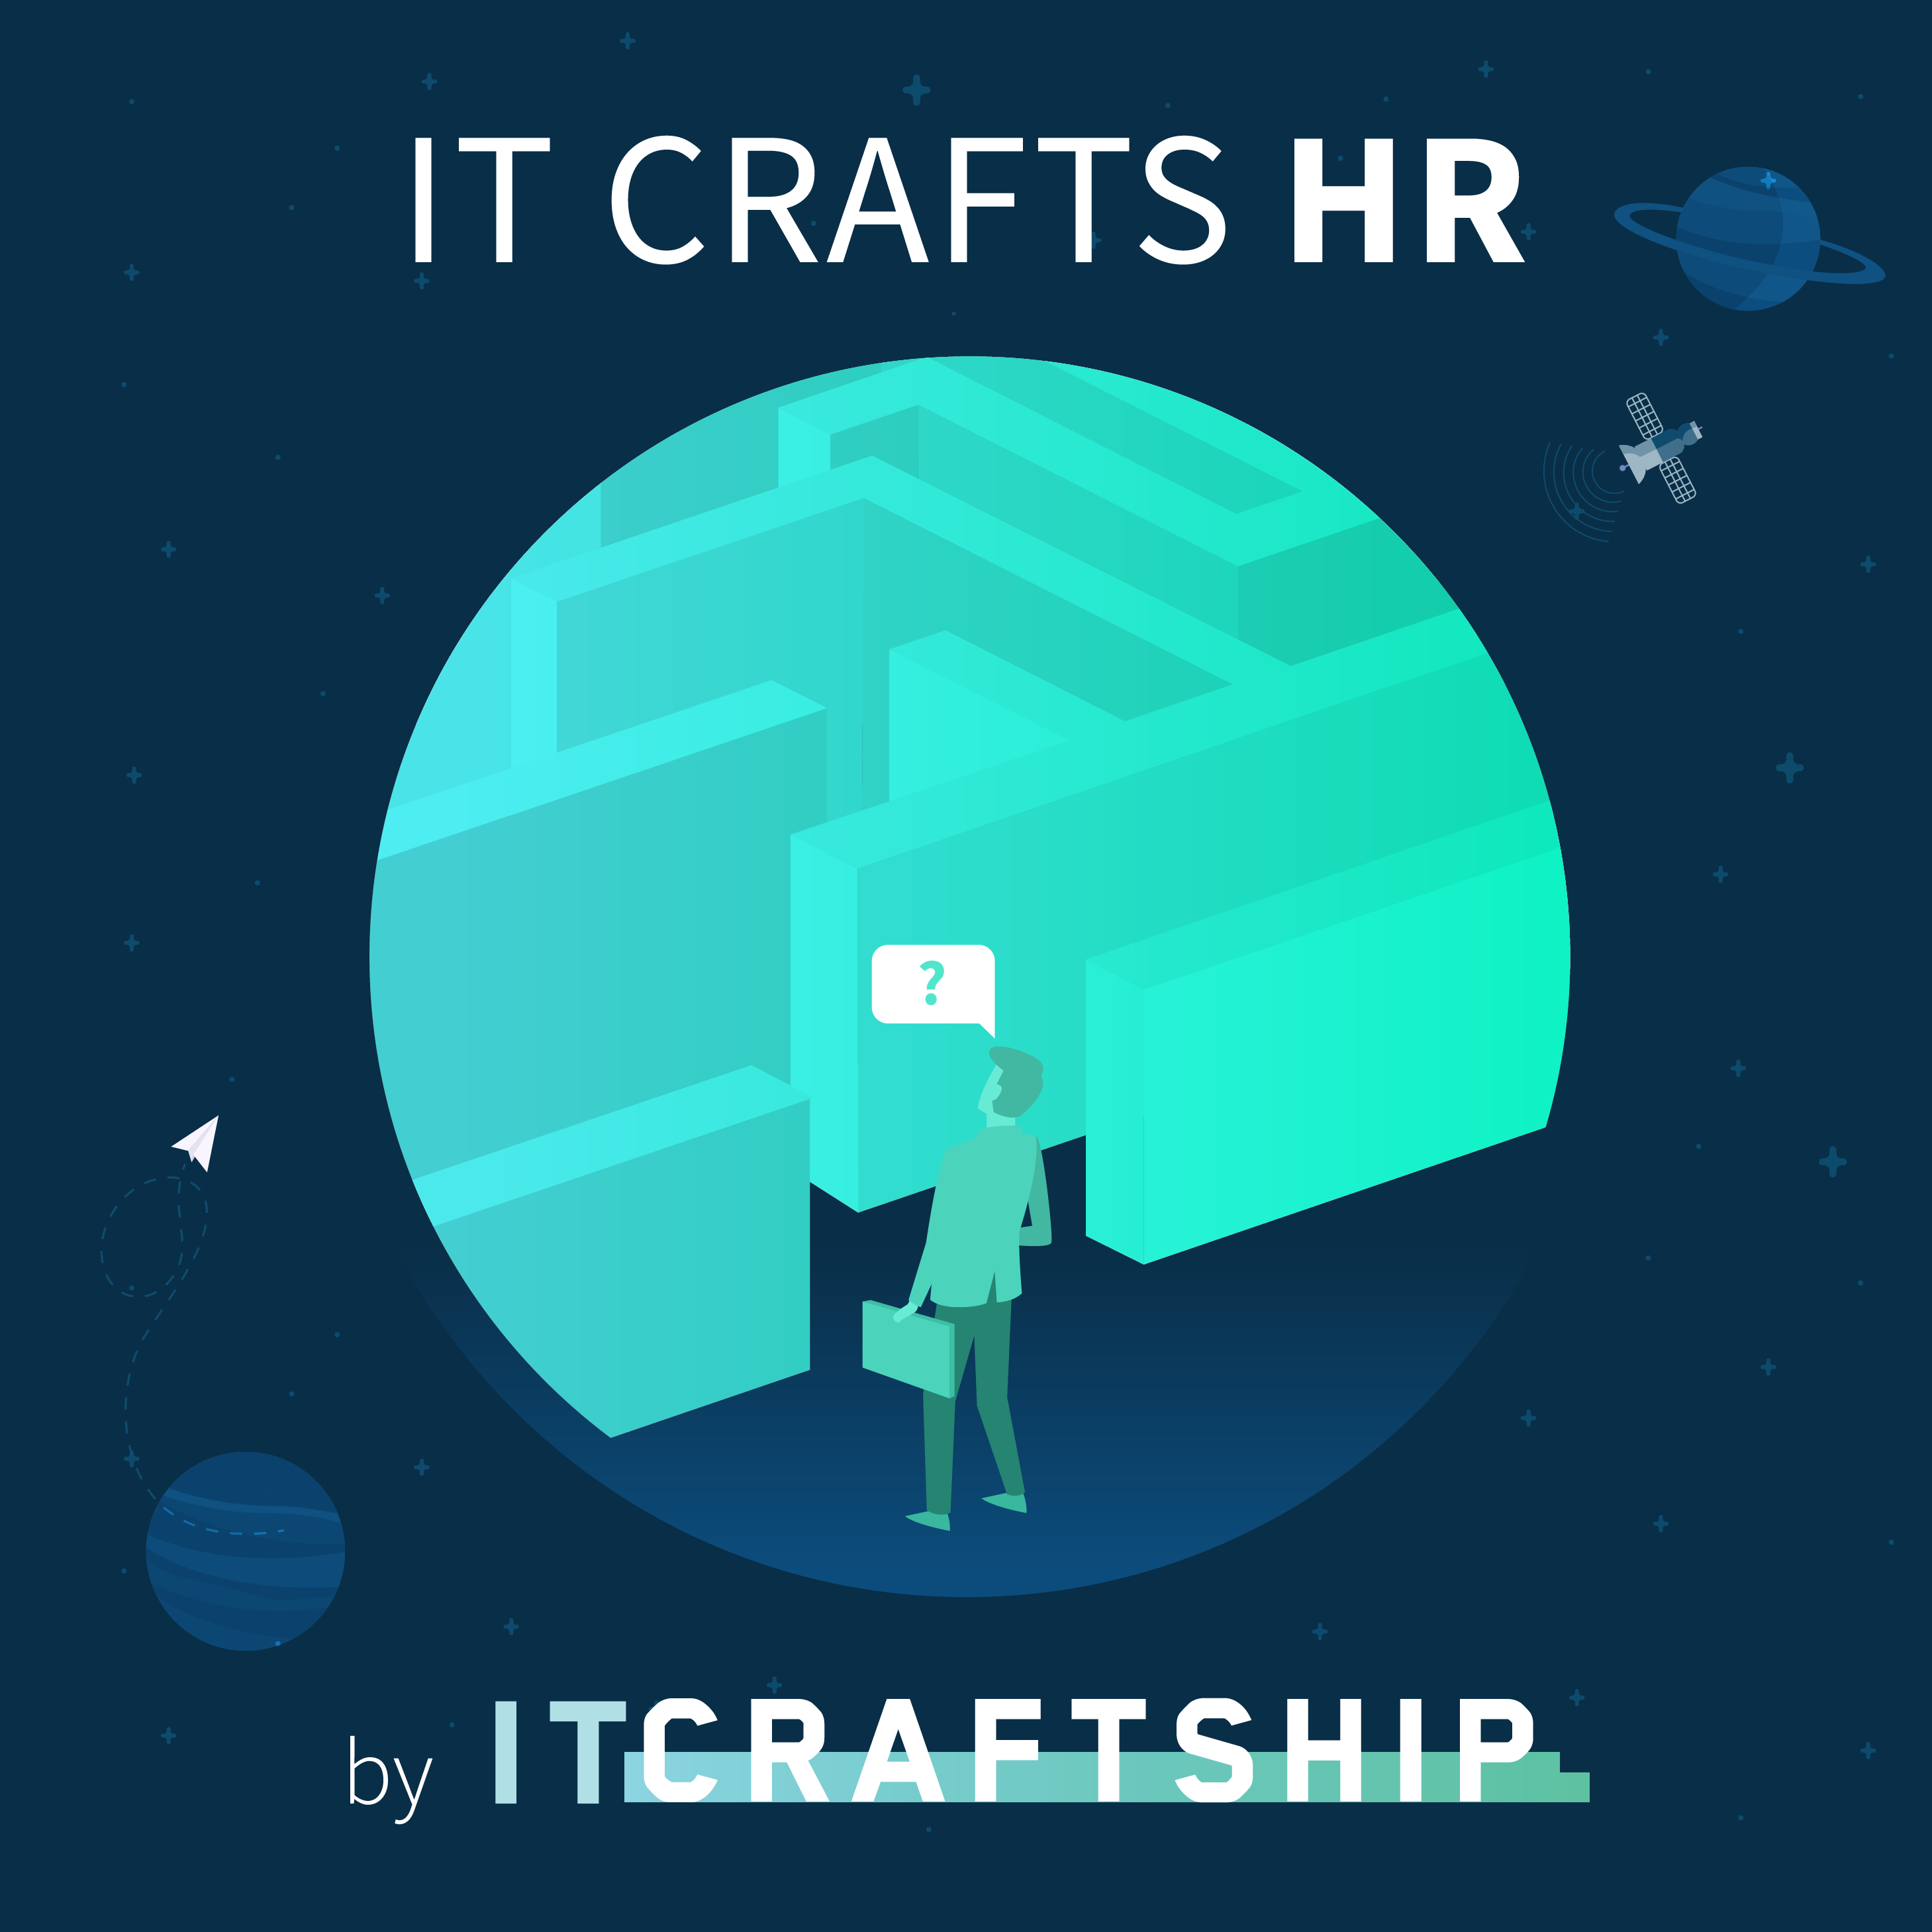 IT Crafts HR – Andrea LaRowe from Basecamp